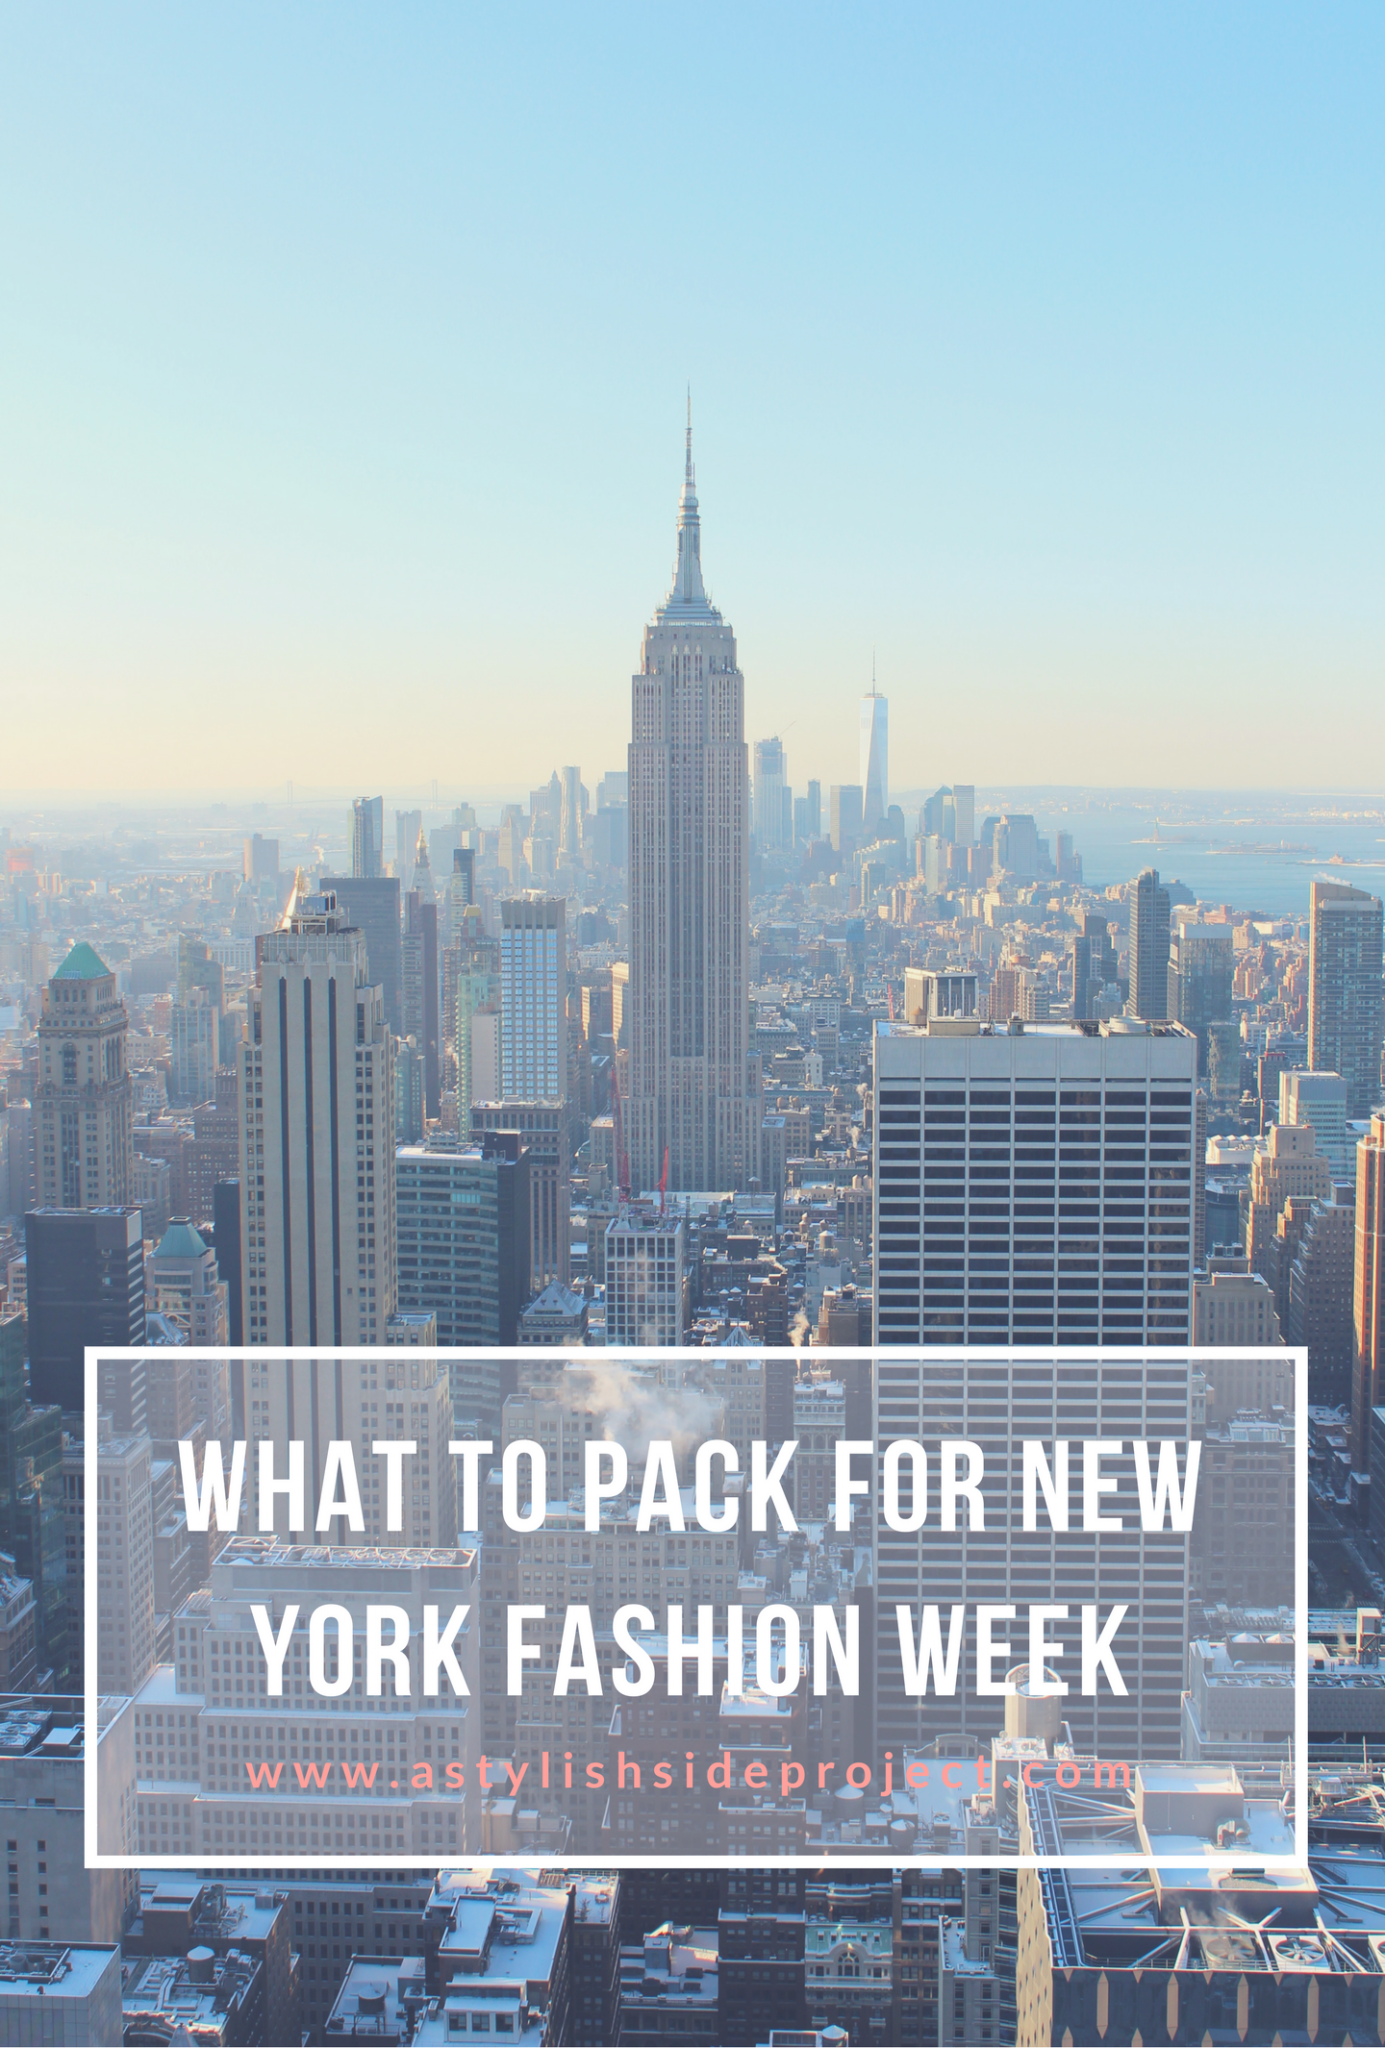 Lifestyle blogger Mollie Sheperdson shares her tips on what to pack in your bag for New York Fashion Week